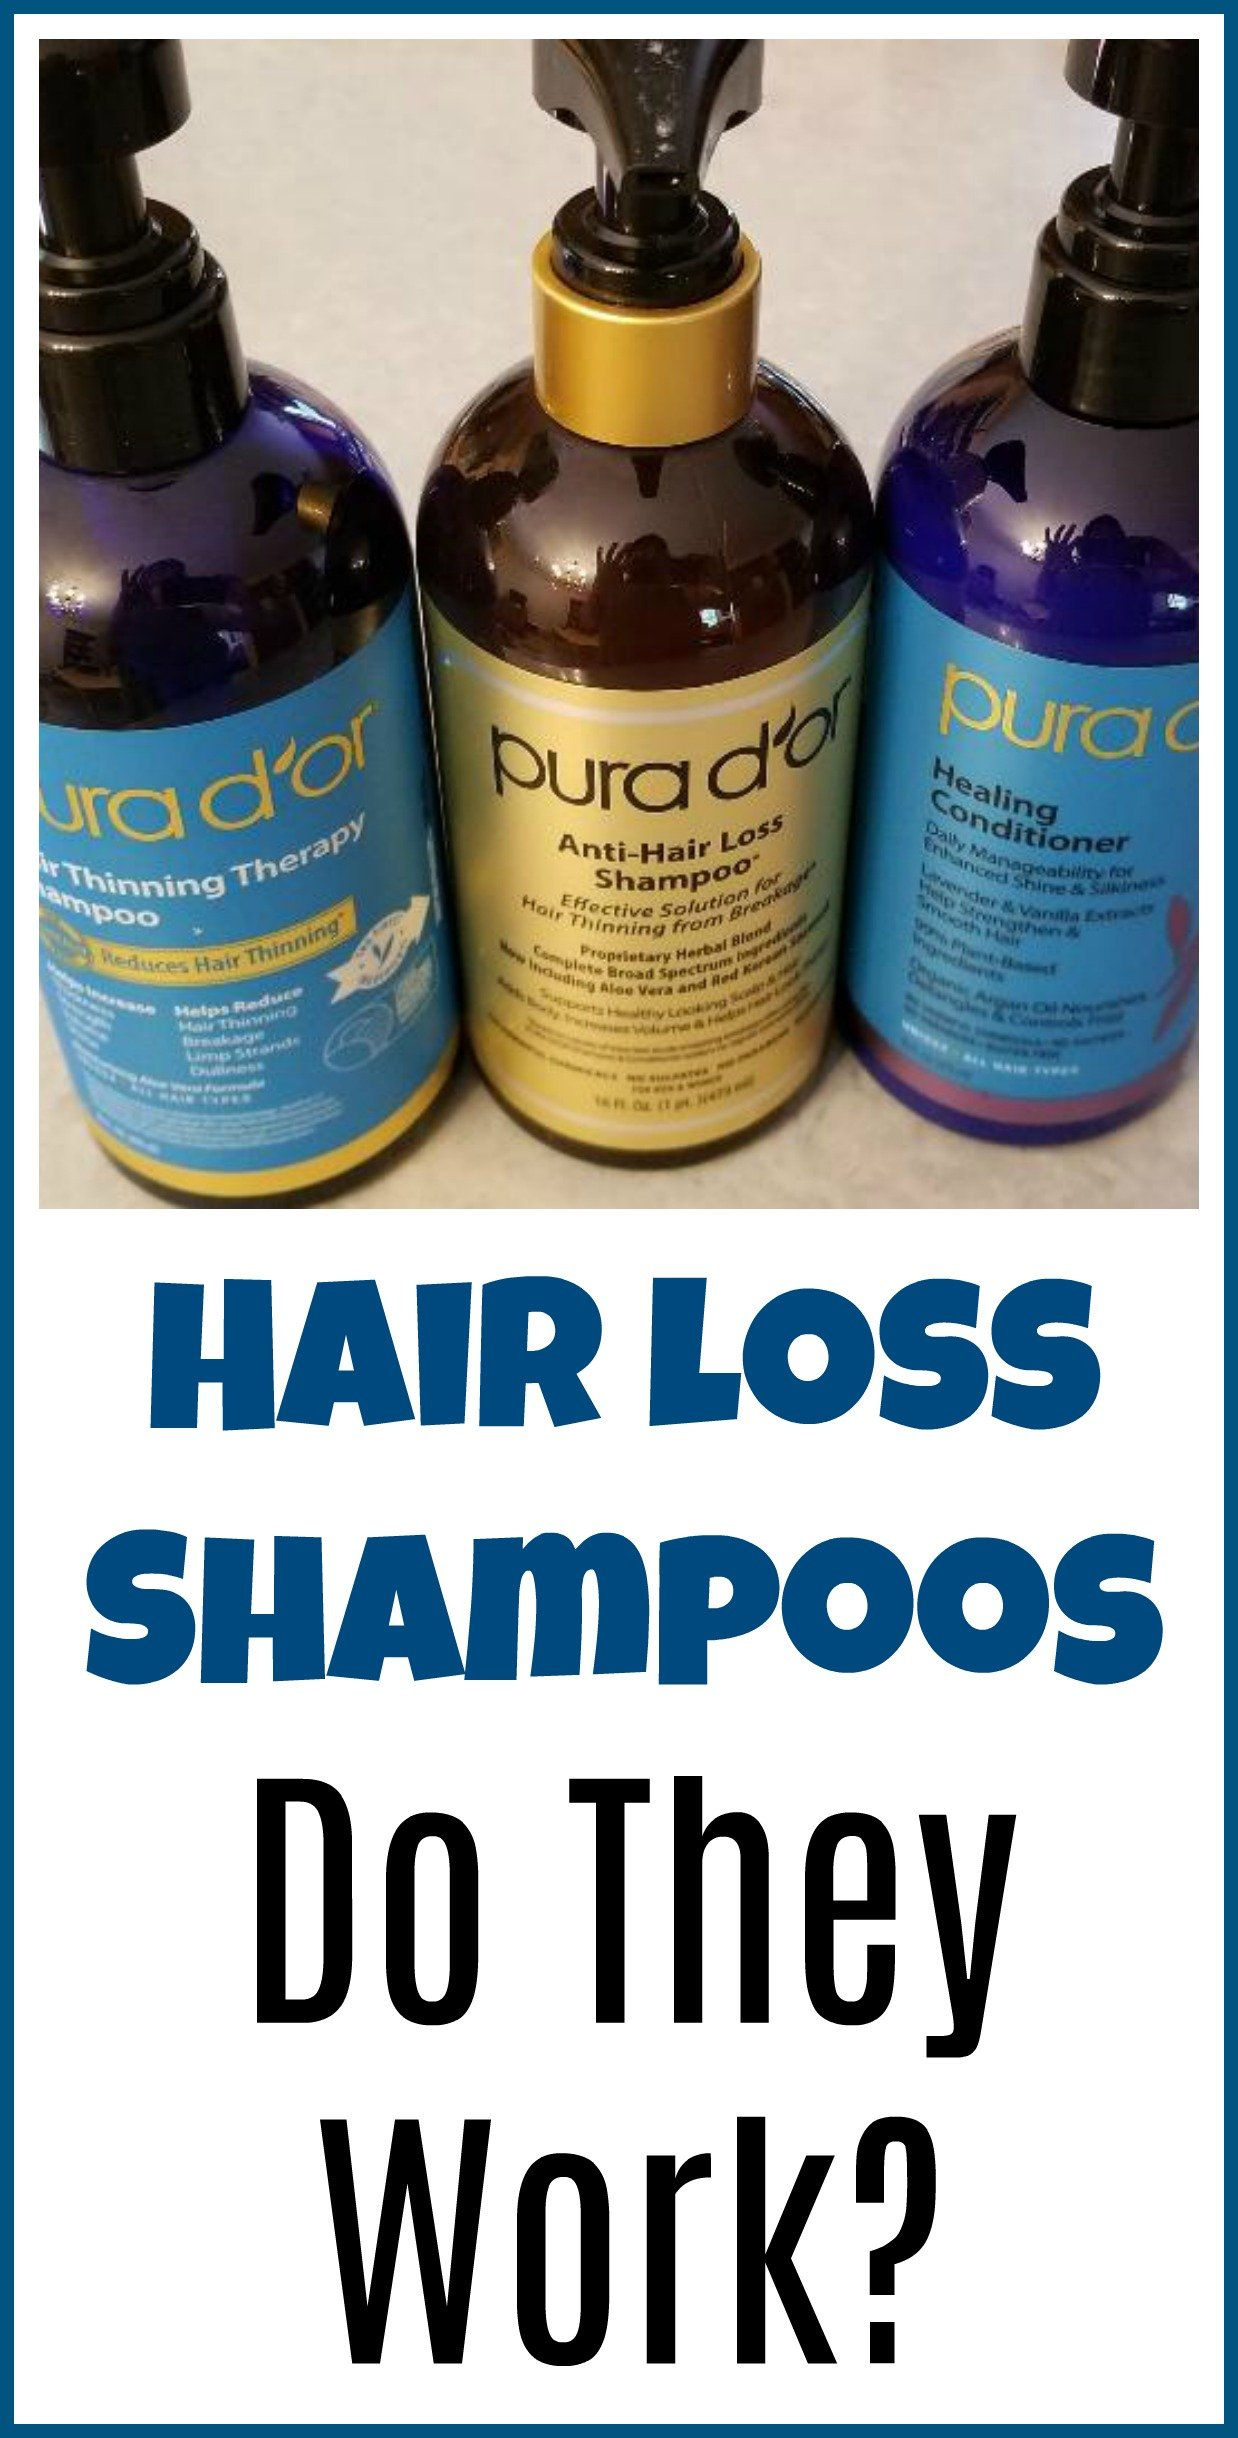 Do hair loss shampoos work